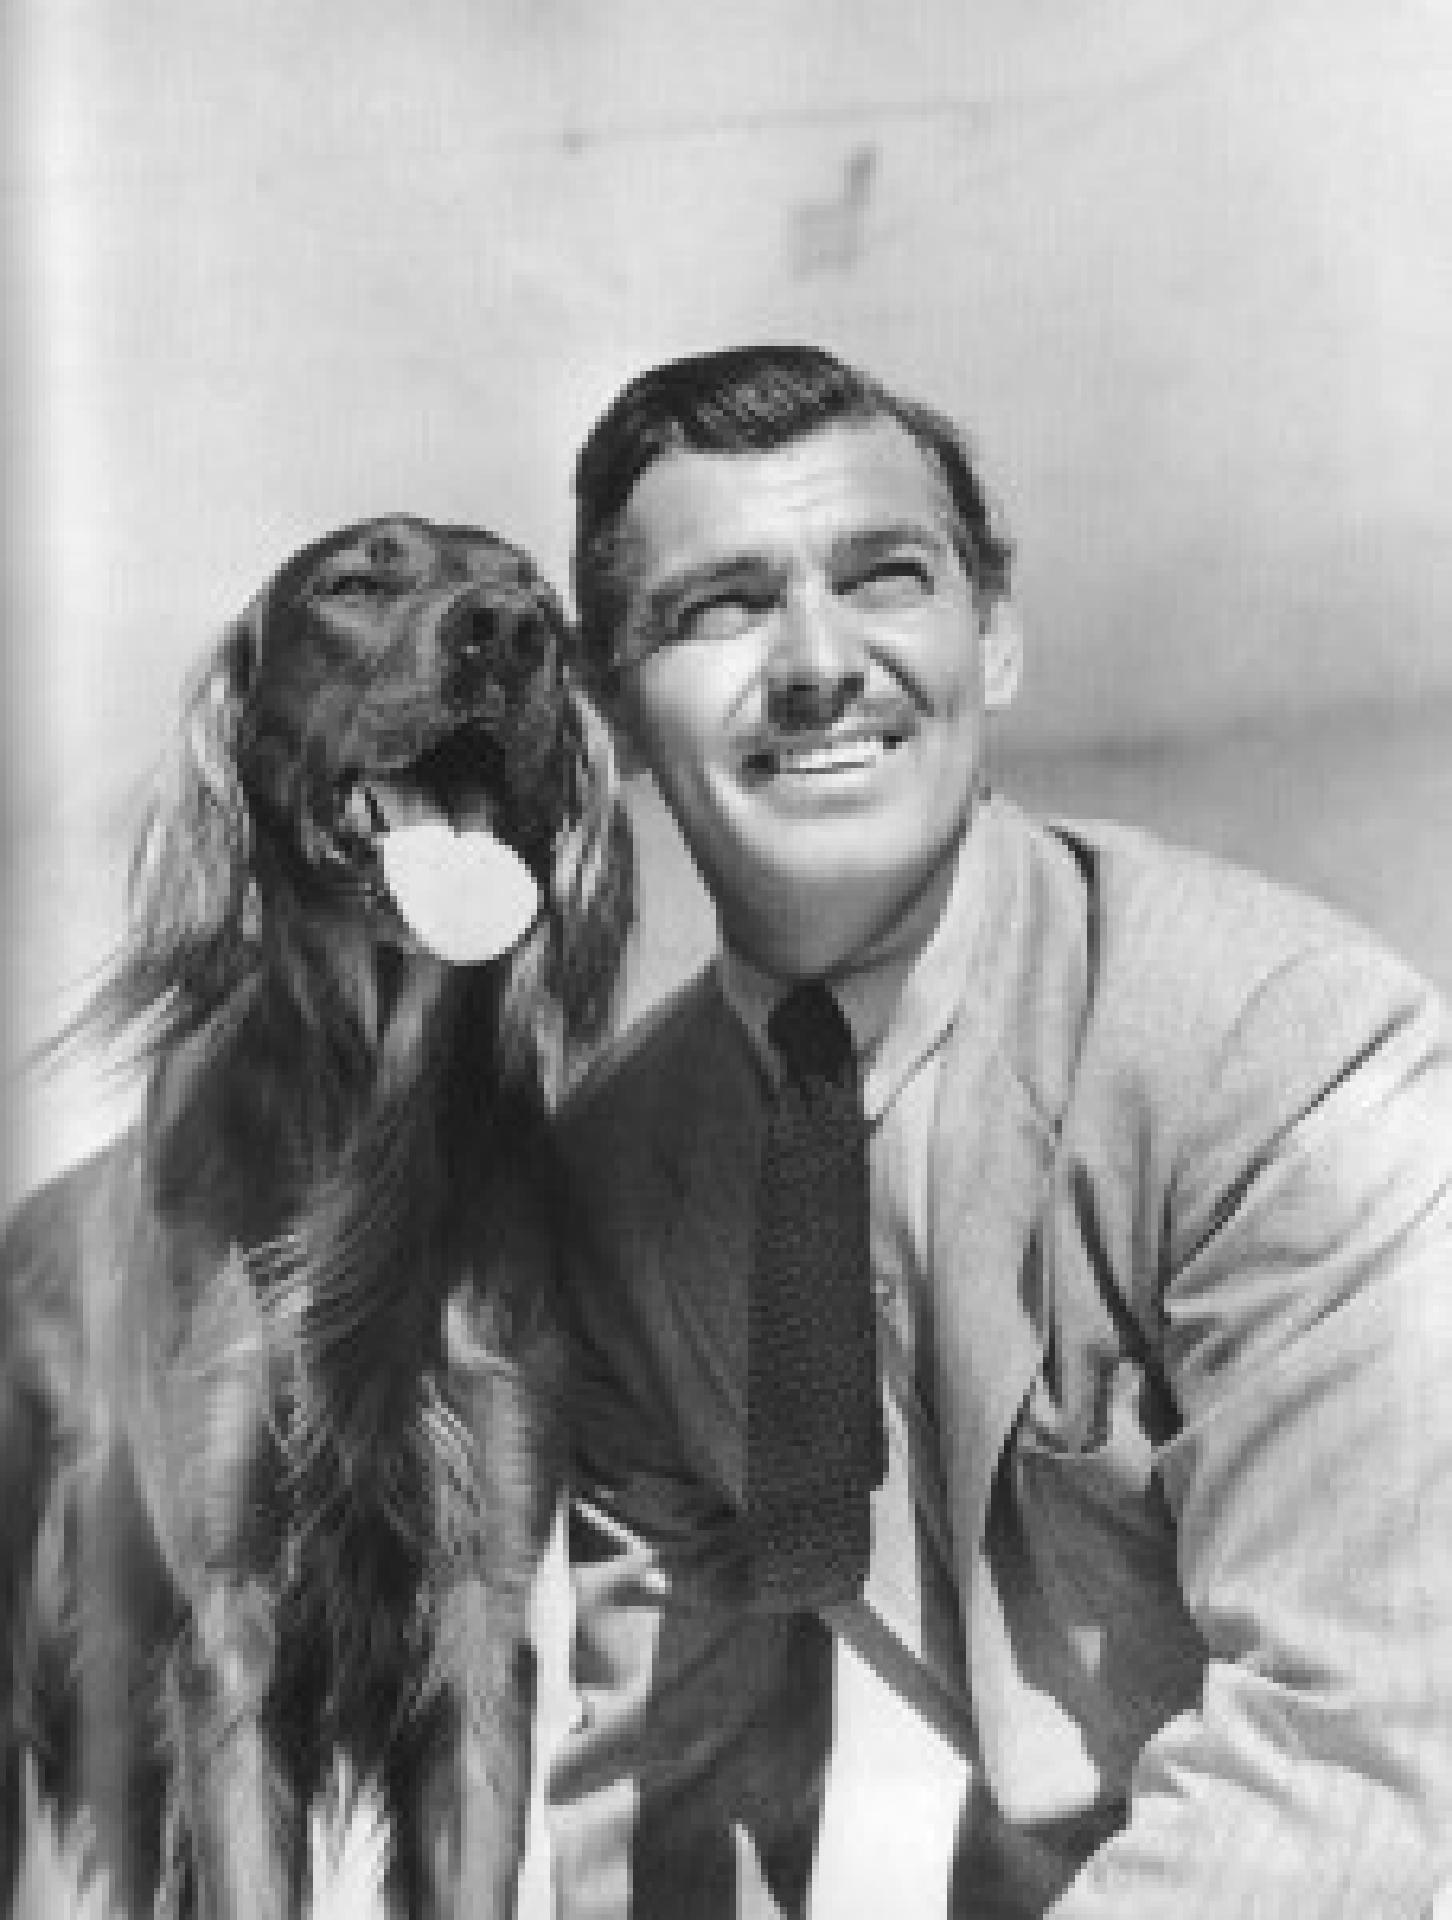 Clark Gable ud sein Setter Lord Reilly, ca. 1941